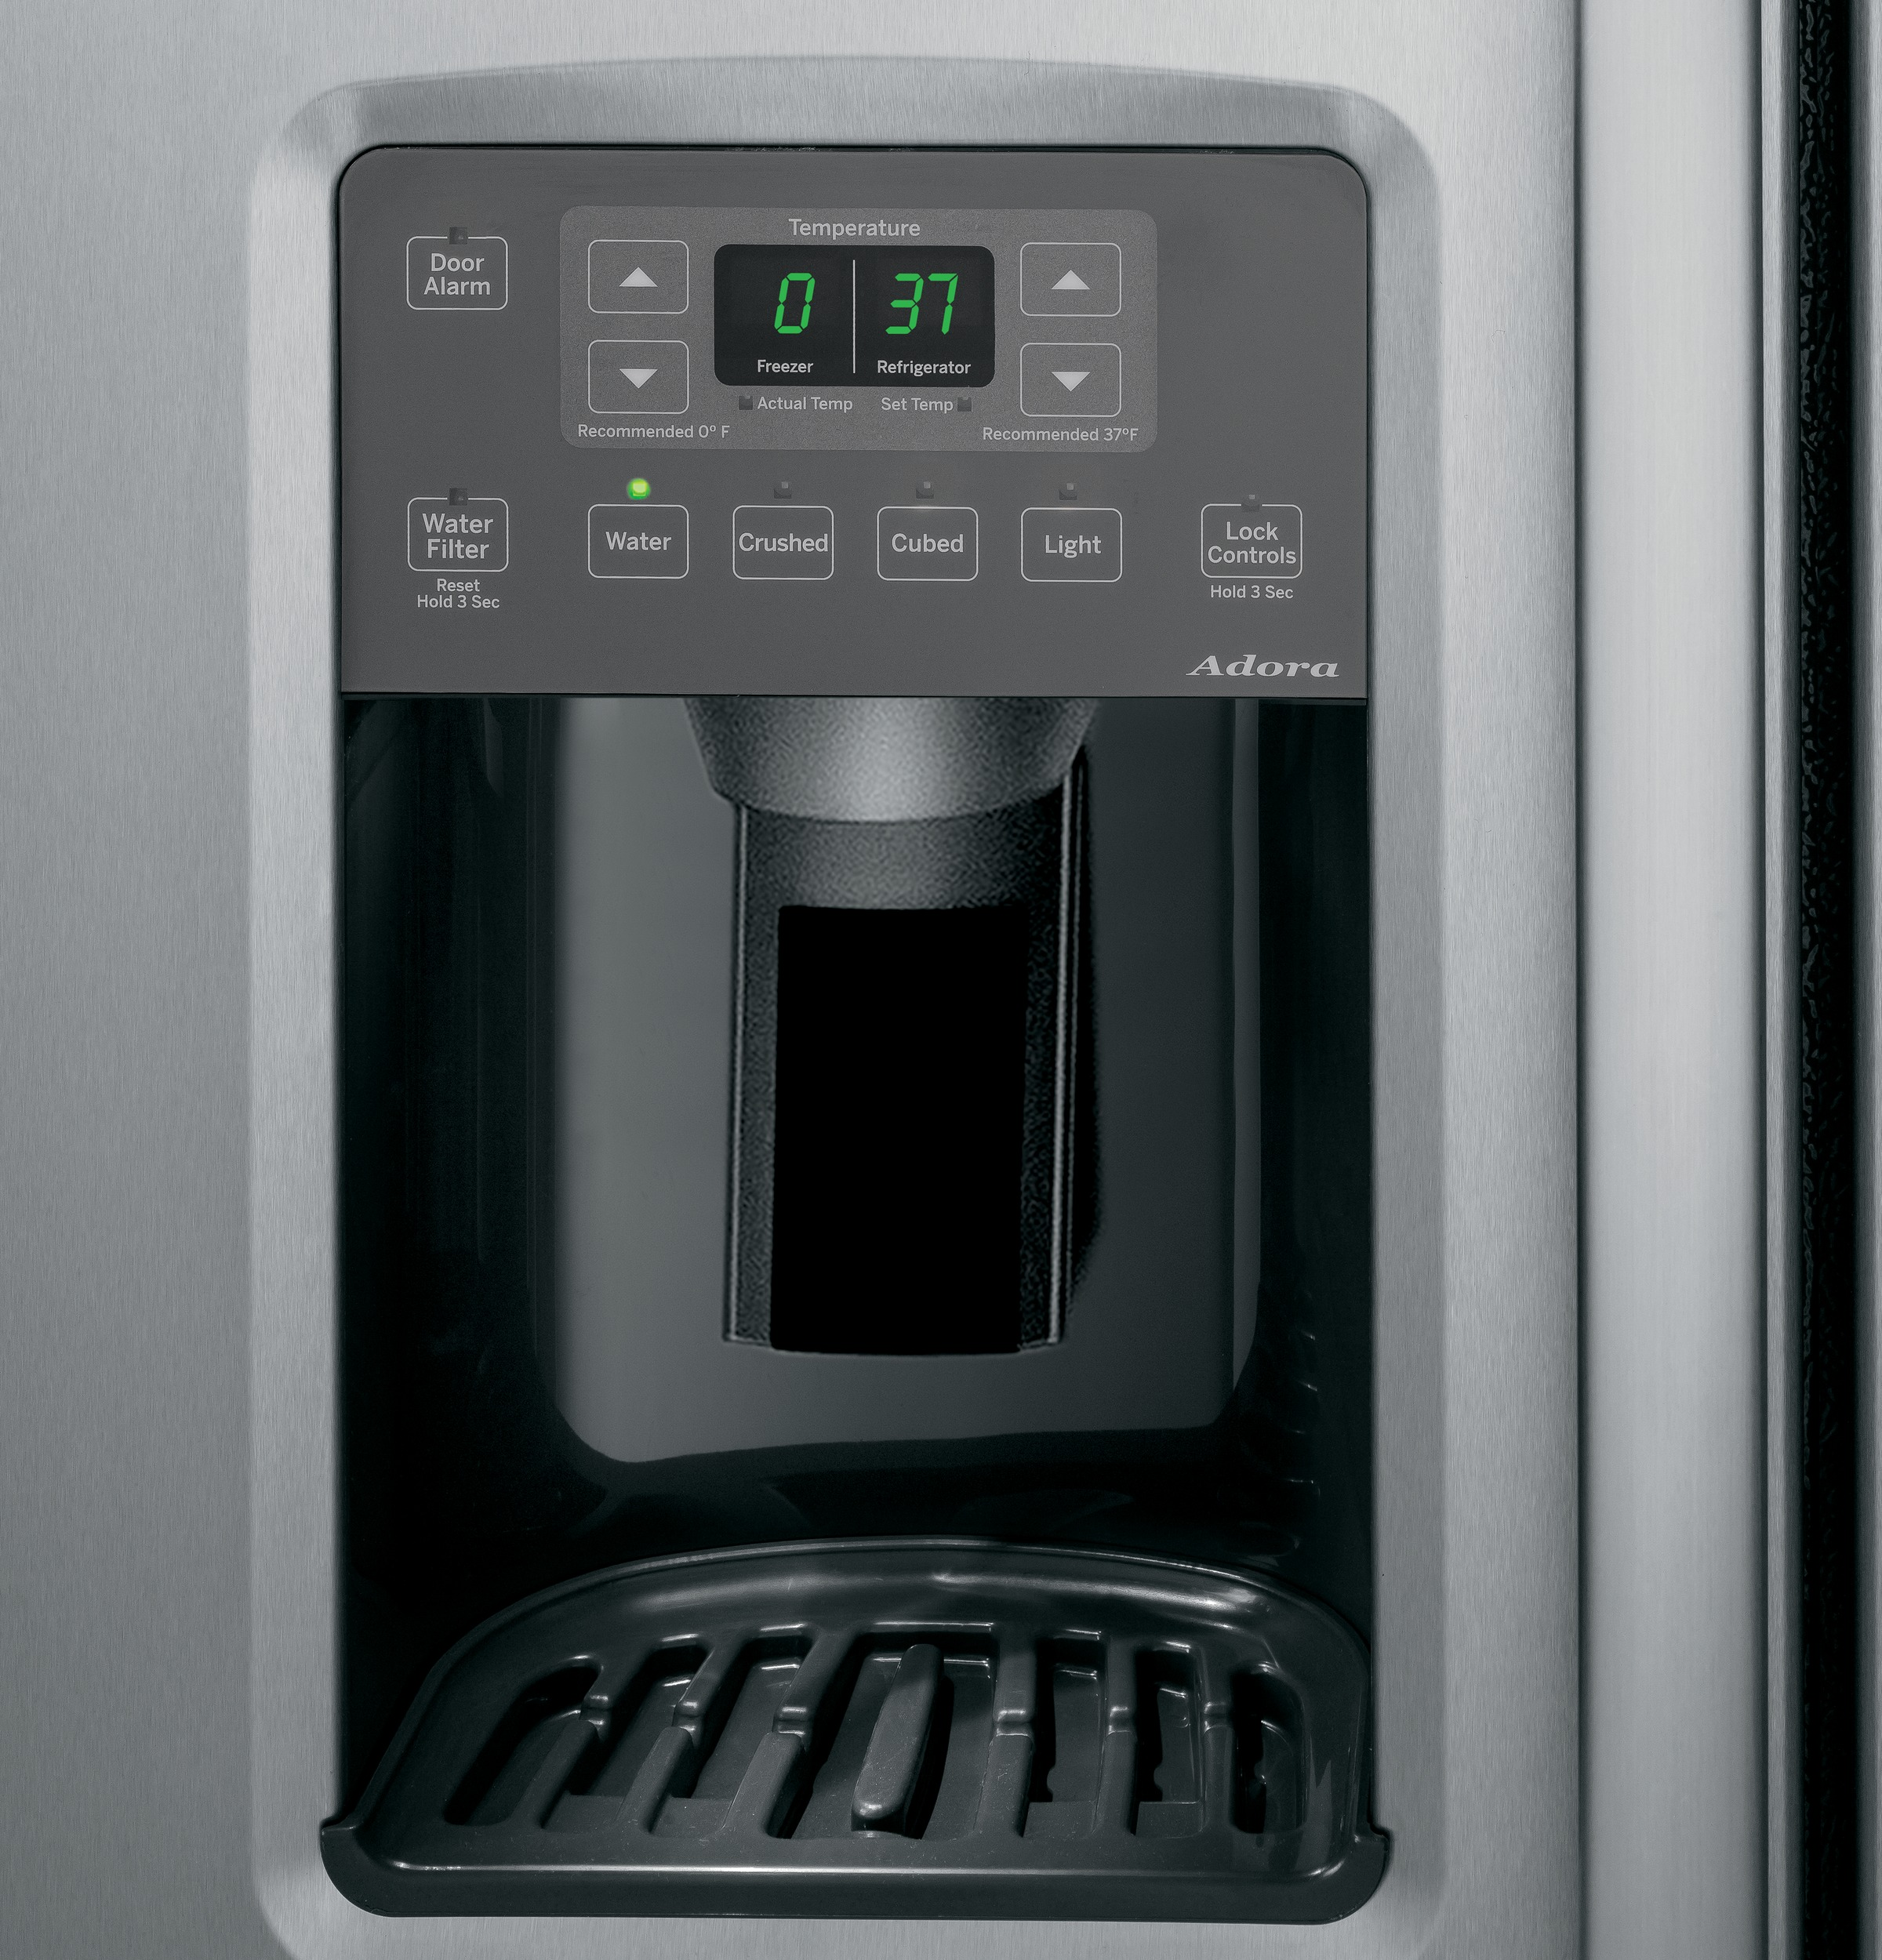 Adora Series By GE® ENERGY STAR® 25.3 Cu. Ft. Side-By-Side